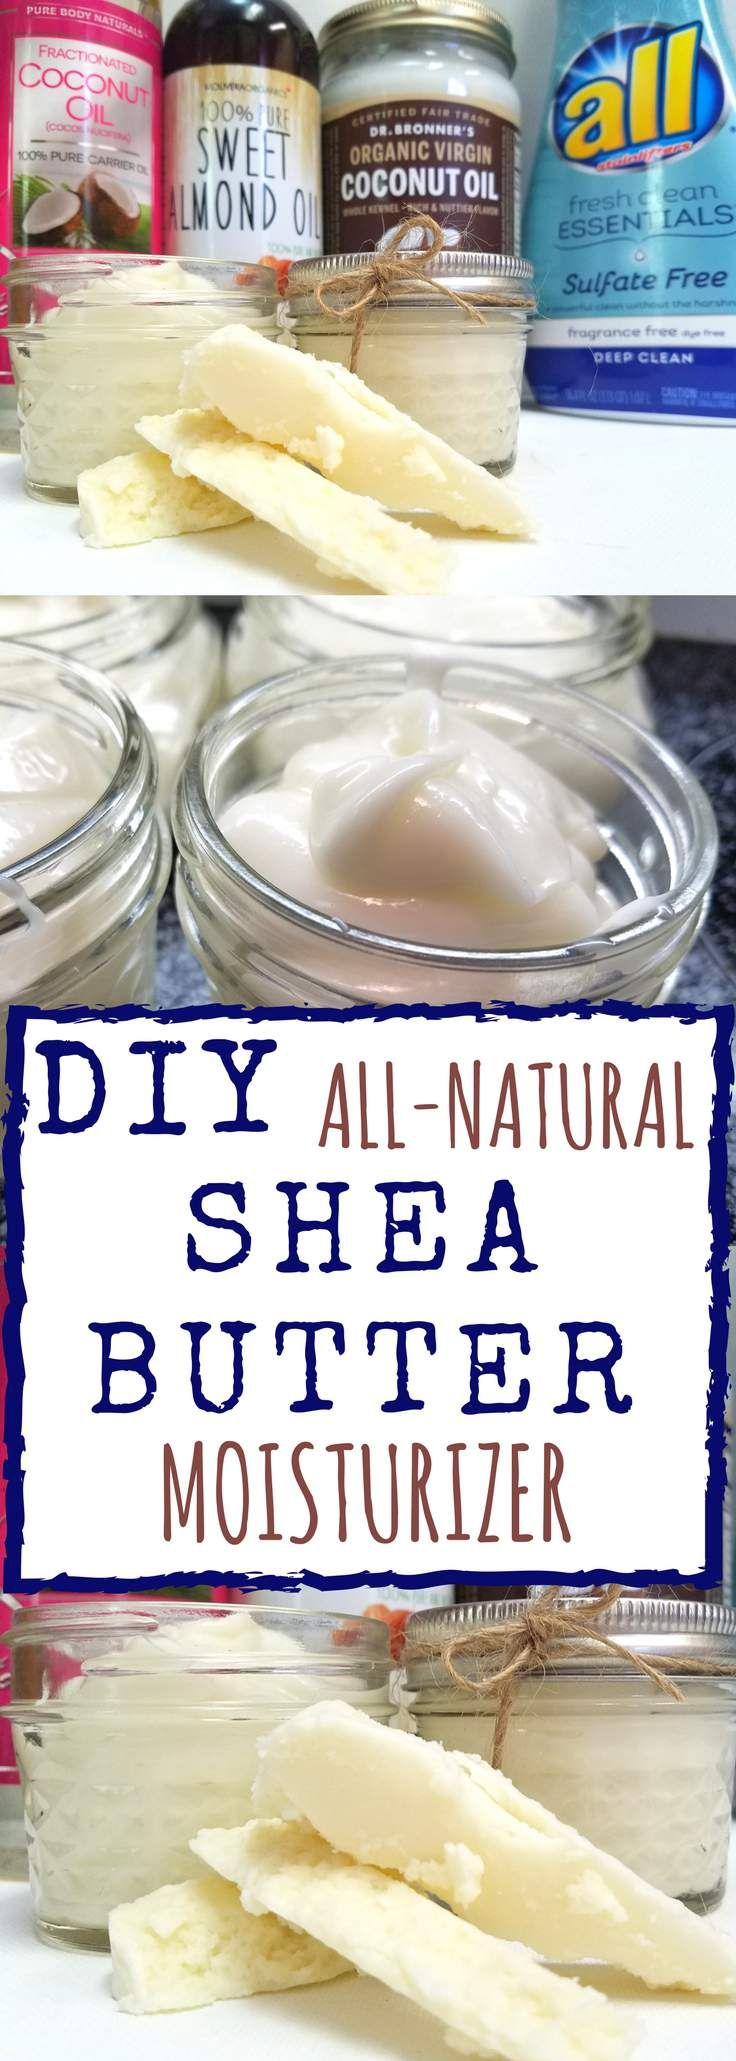 #ad #allessentials #allsulfatefree   DIY Whipped Shea Butter   All you have to do is melt down the ingredients, stir and wah la' moisturizer. Sounds easy enough right?   Homestead Wishing, Author Kristi Wheeler   http://homesteadwishing.com/diy-whipped-shea-butter-moisturizer/   diy-shea-butter, diy-body-butter, diy-moisturizer, homemade-shea-butter   DIY-whipped-shea-butter-moisturizer   DIY whipped shea butter moisturizer